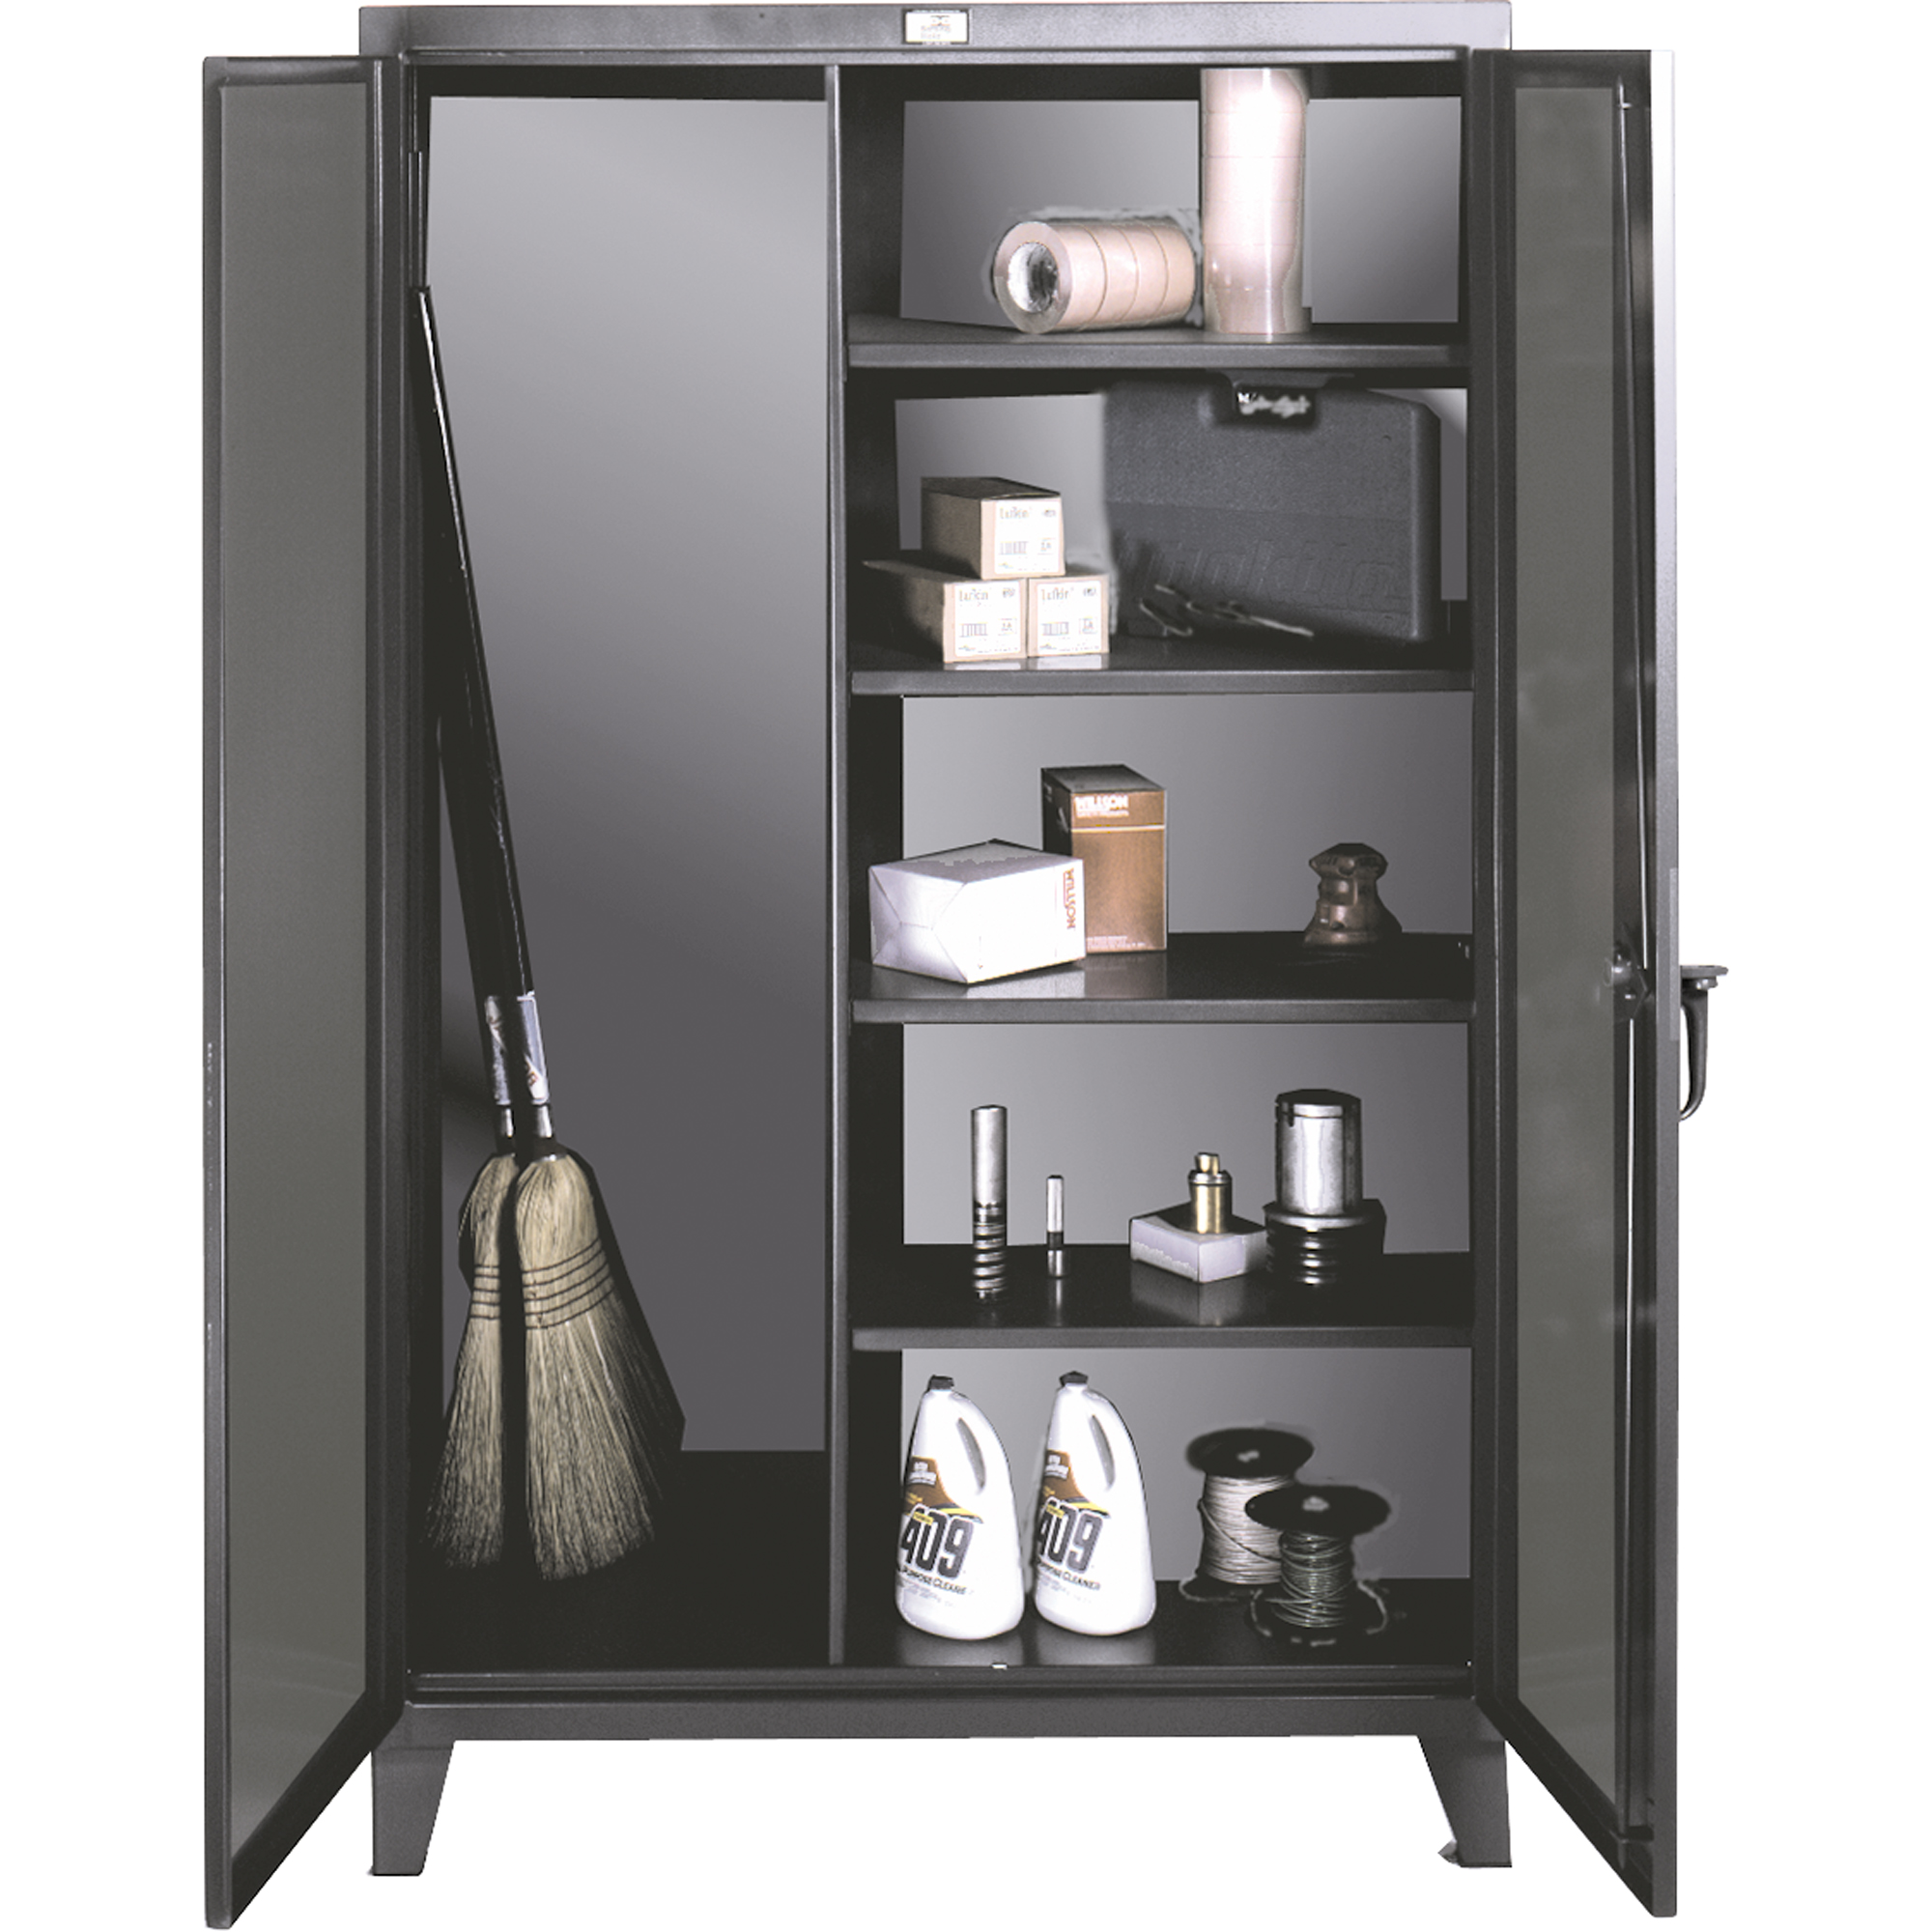 Strong Hold Extra Shelves For Broom Closet Storage Cabinet Scn